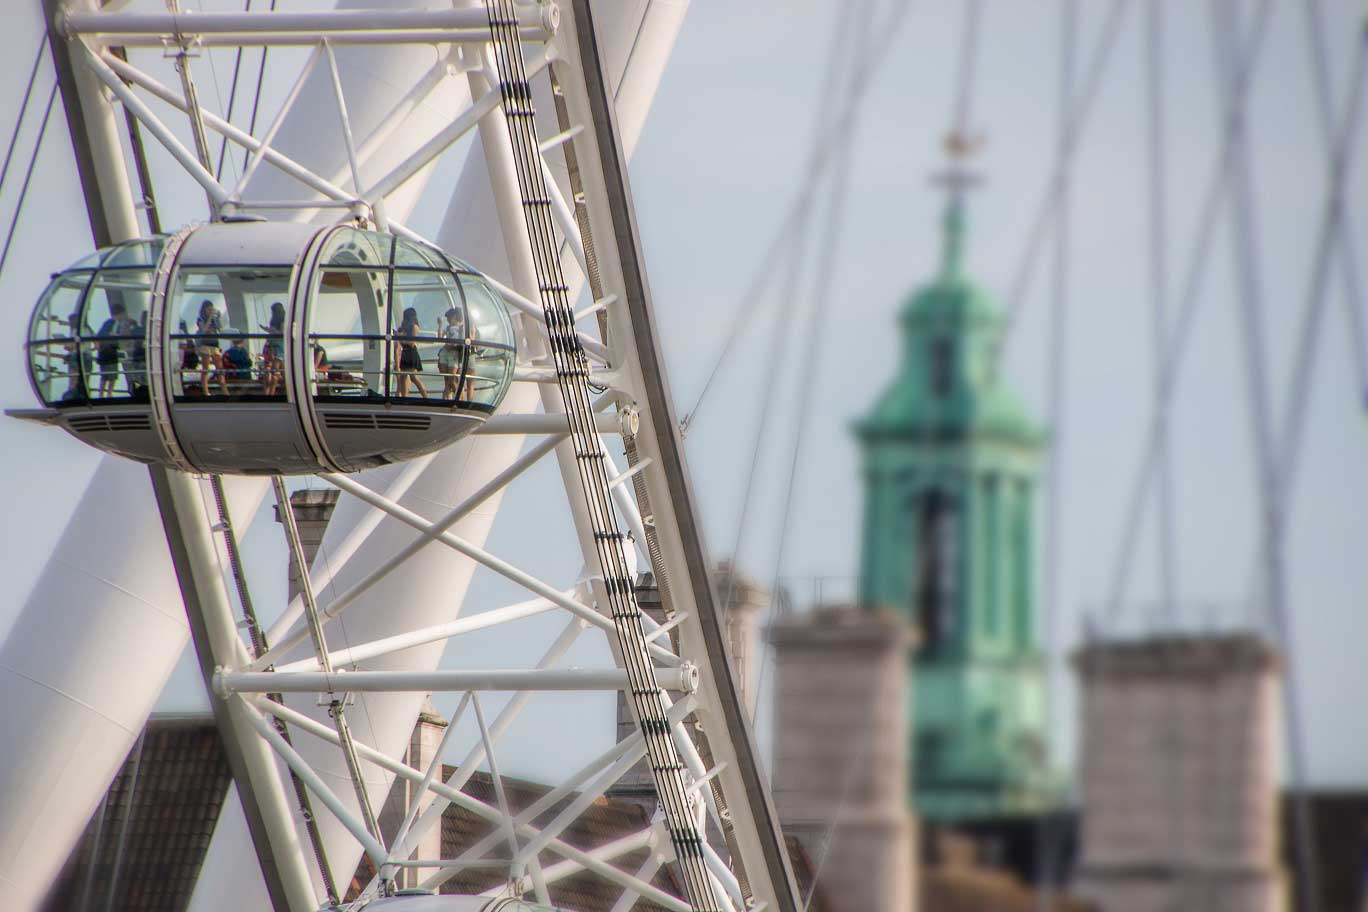 London Eye Combo Tickets - The London Eye